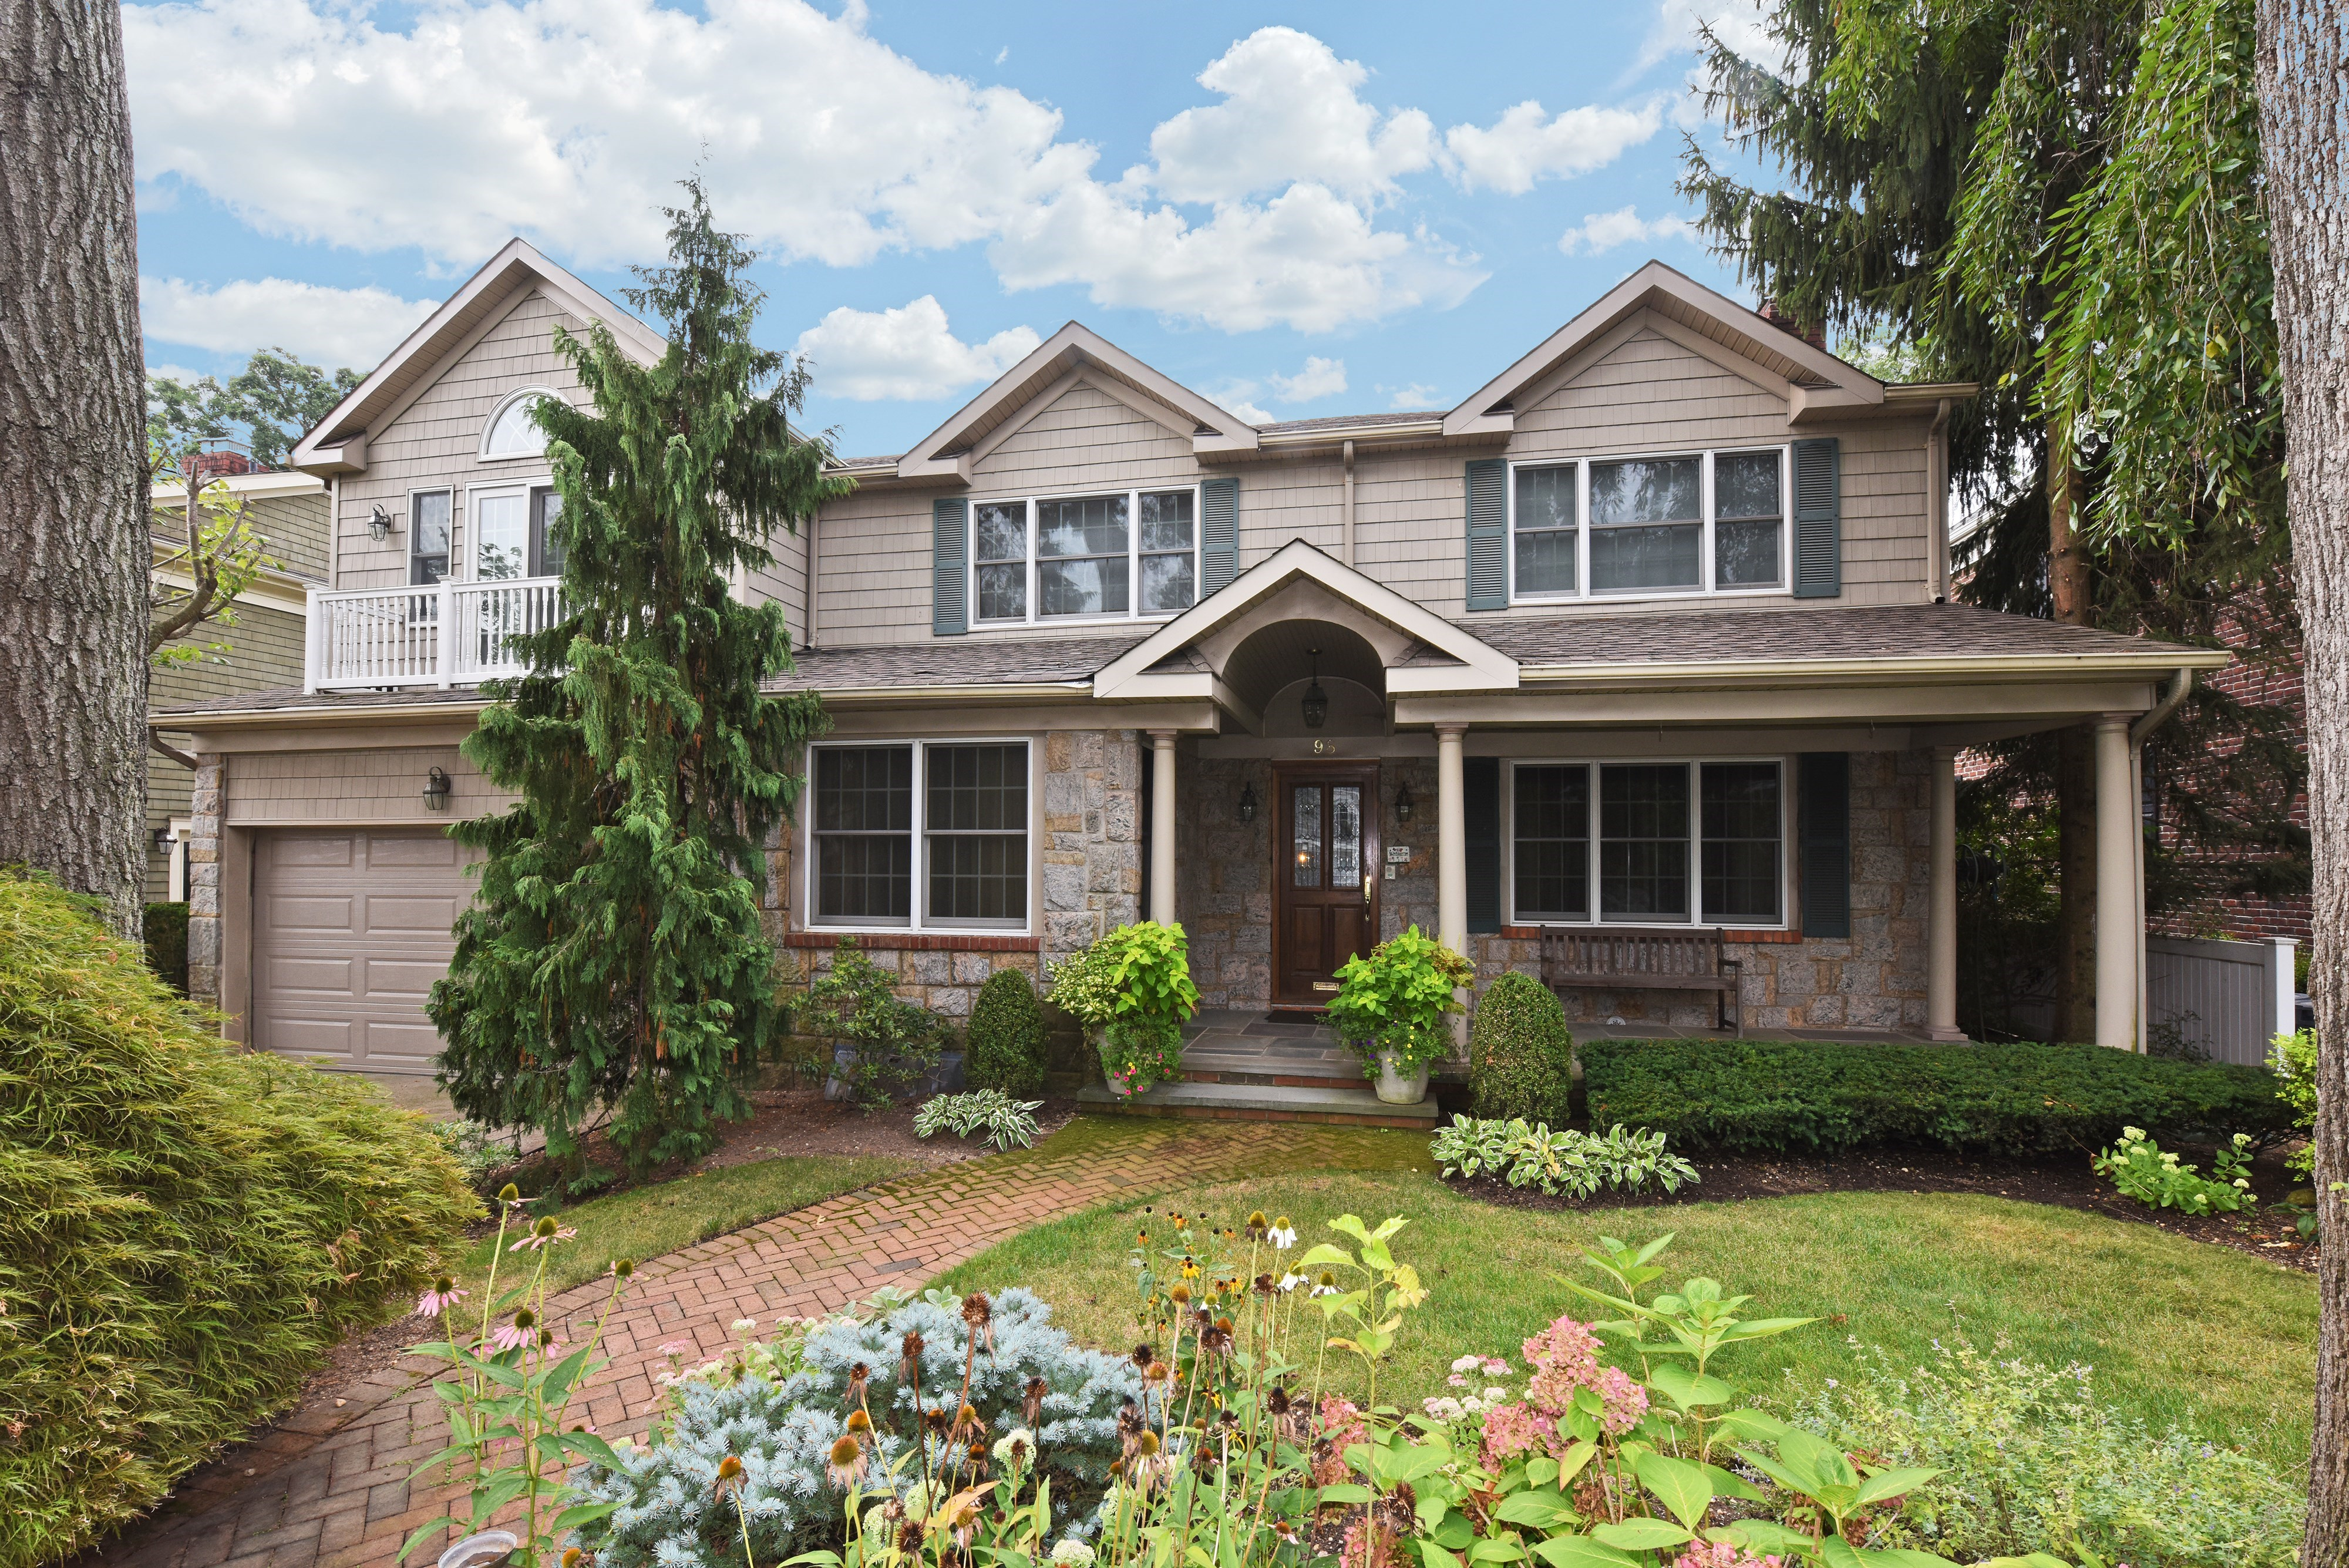 Single Family Home for Sale at Colonial 98 Arrandale Rd Rockville Centre, New York 11570 United States